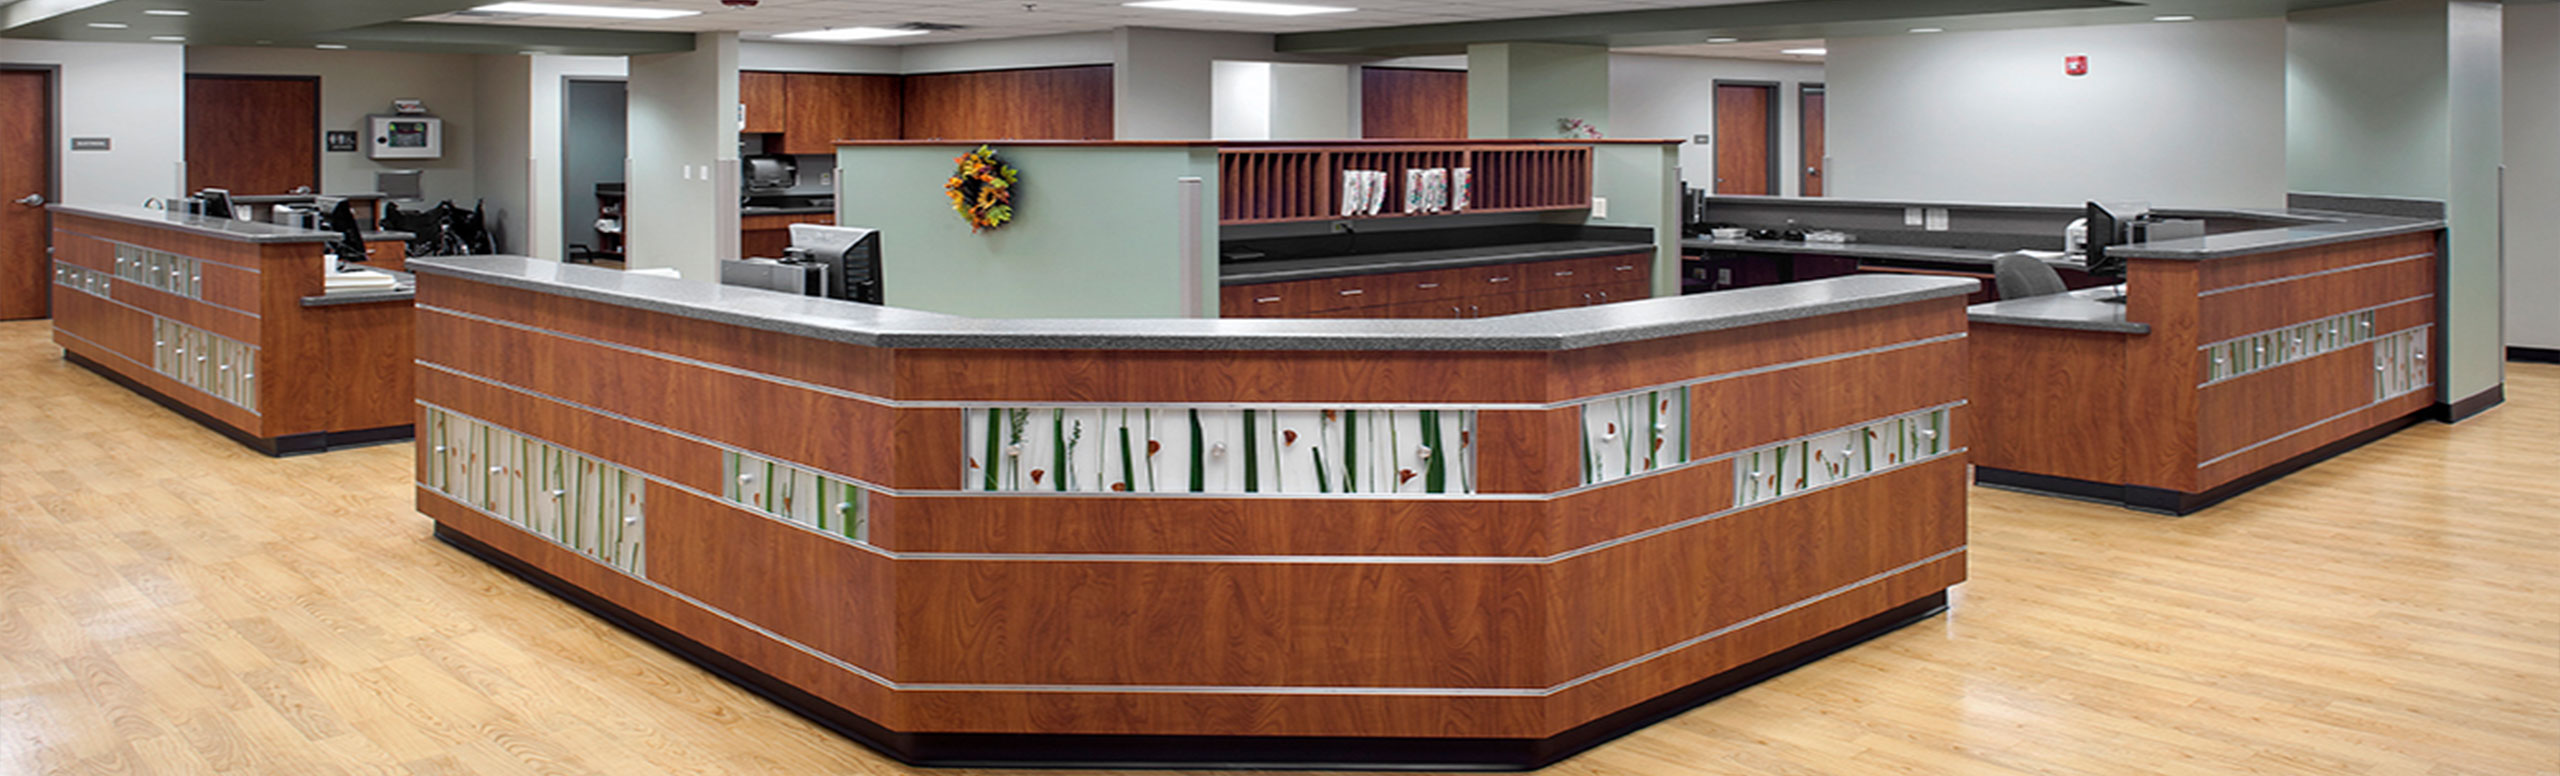 Picture of The Lavaca Medical Center customer service  front lobby desks with computers